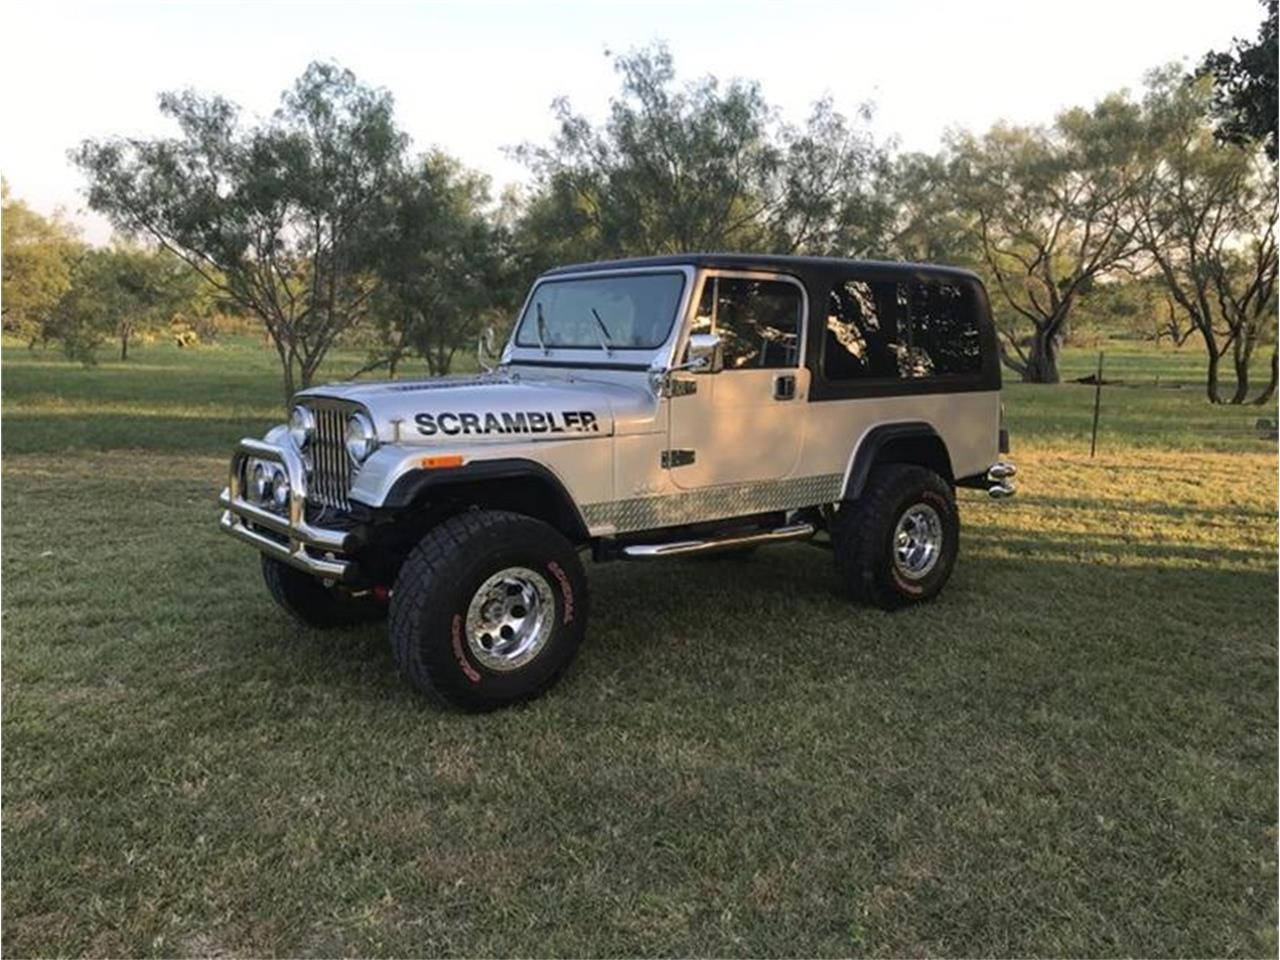 Large Picture of '81 CJ8 Scrambler - QKZH